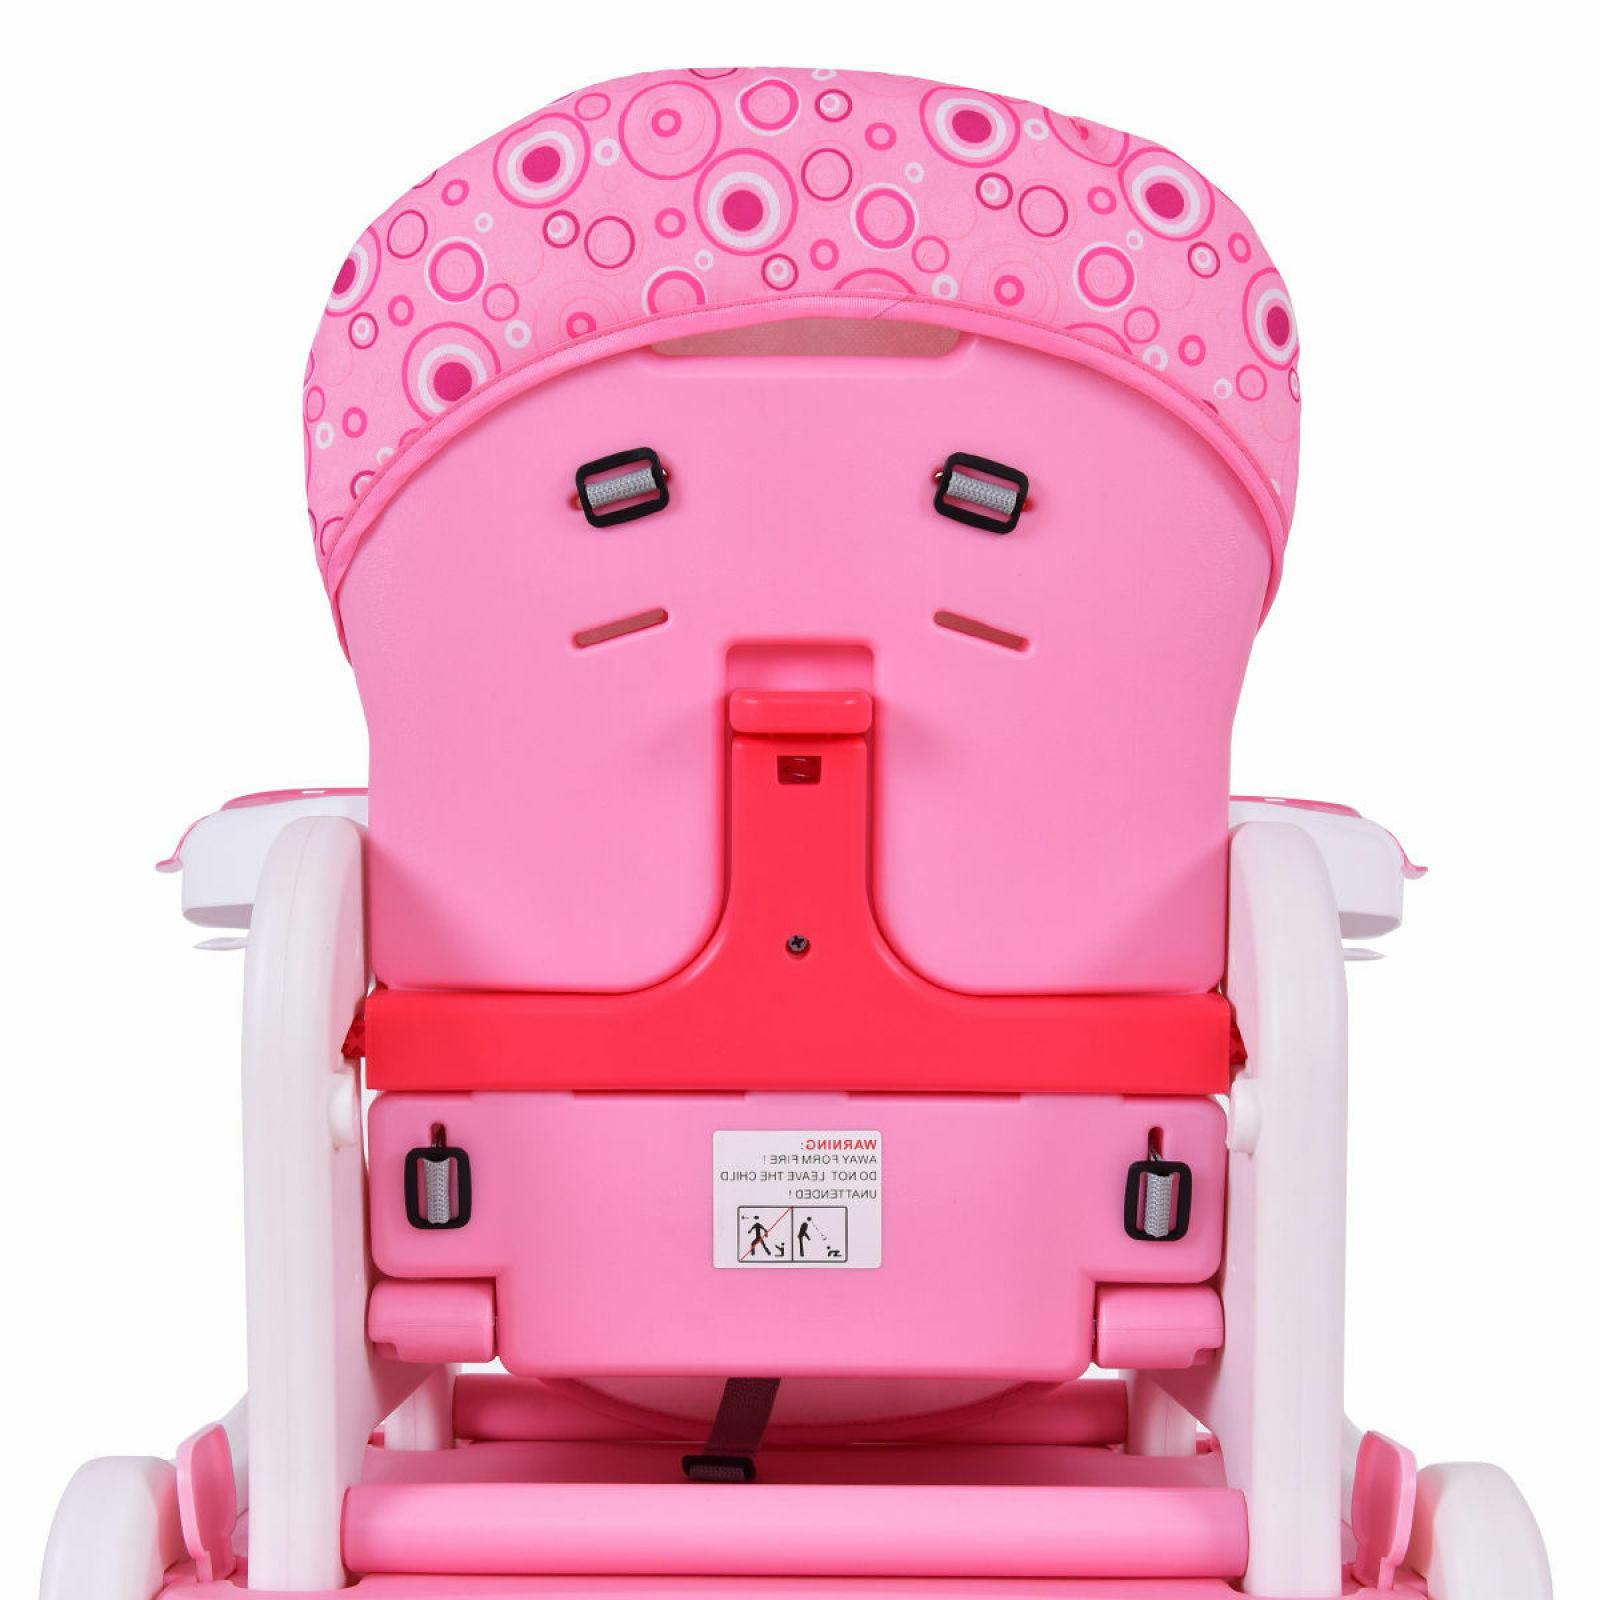 Costway 3 Baby High Chair Convertible Play Toddler Pink